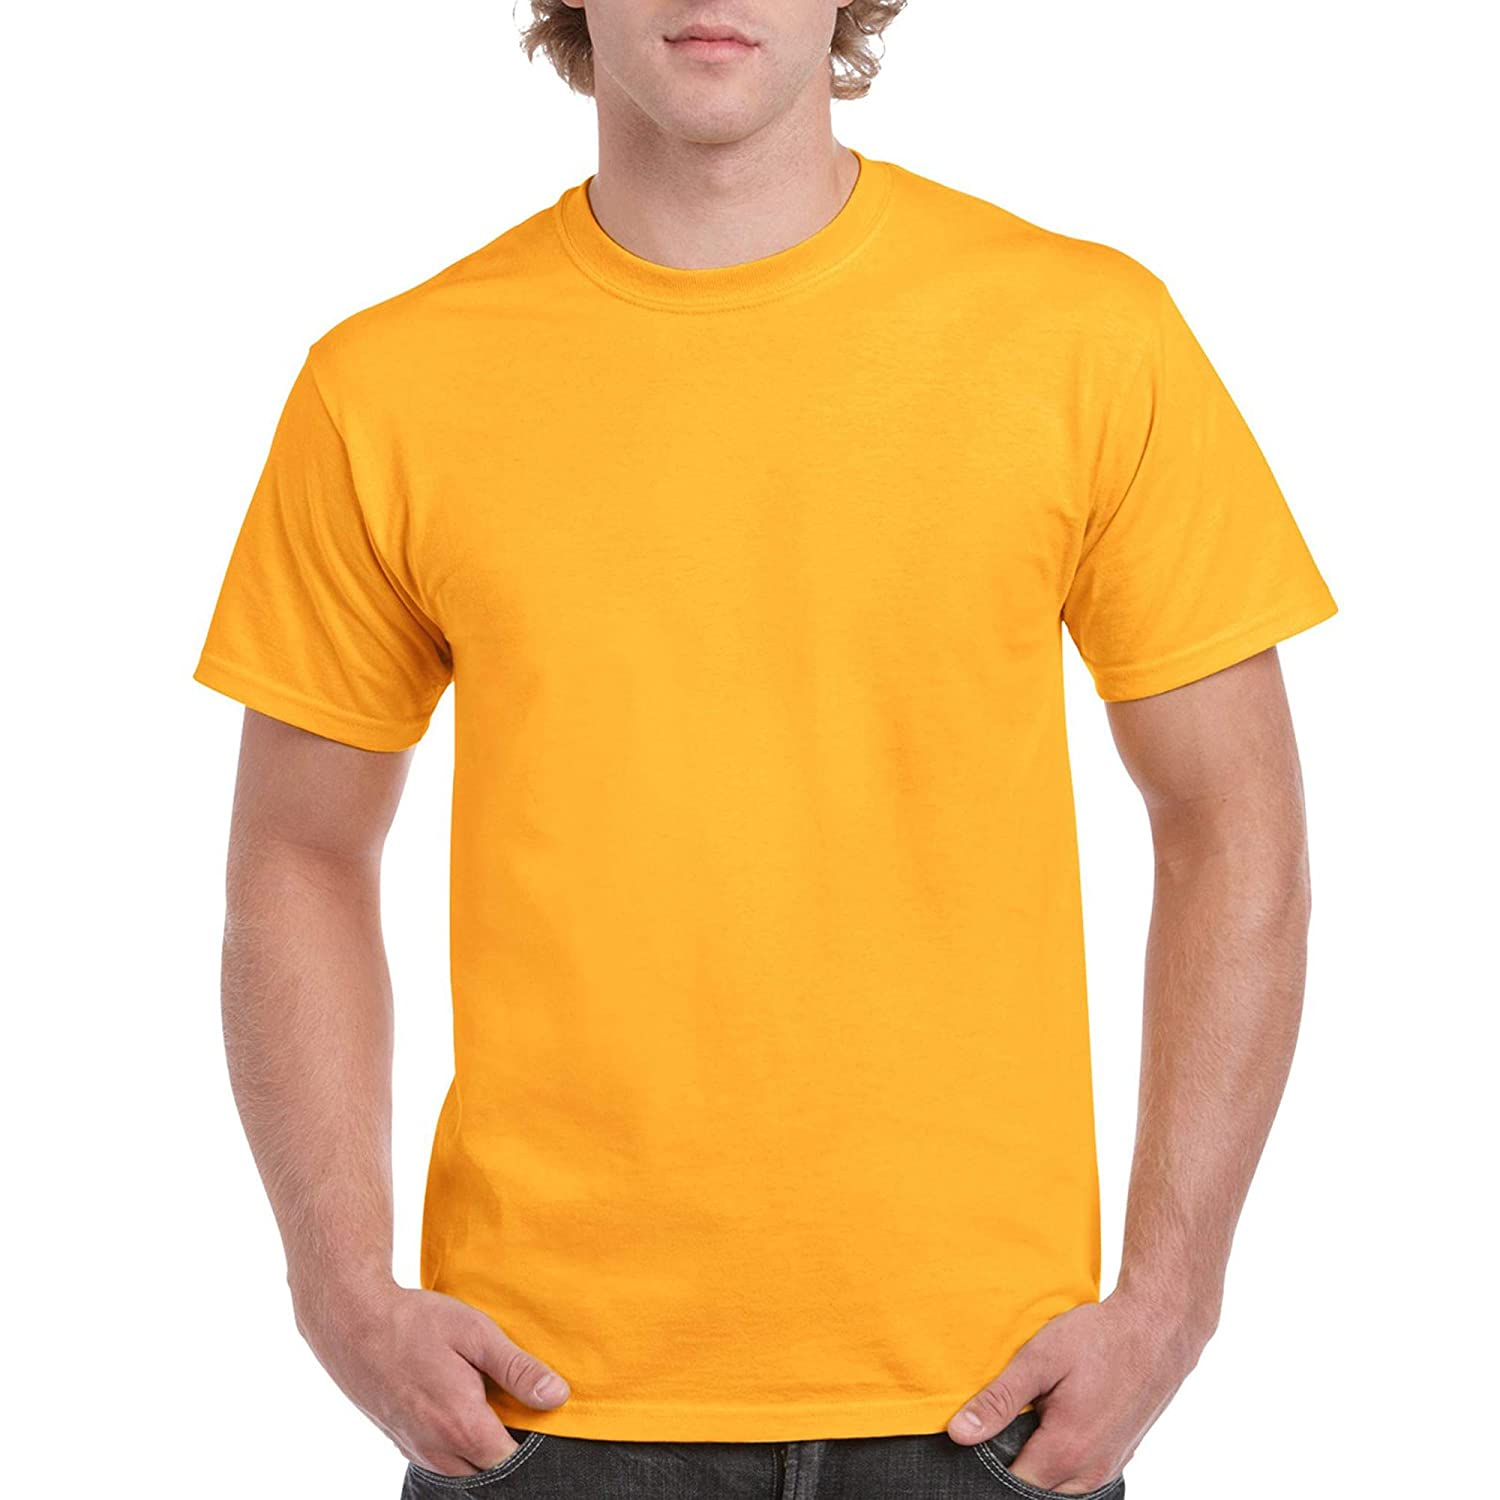 74950049e T Shirt Manufacturing Company In India | Top Mode Depot